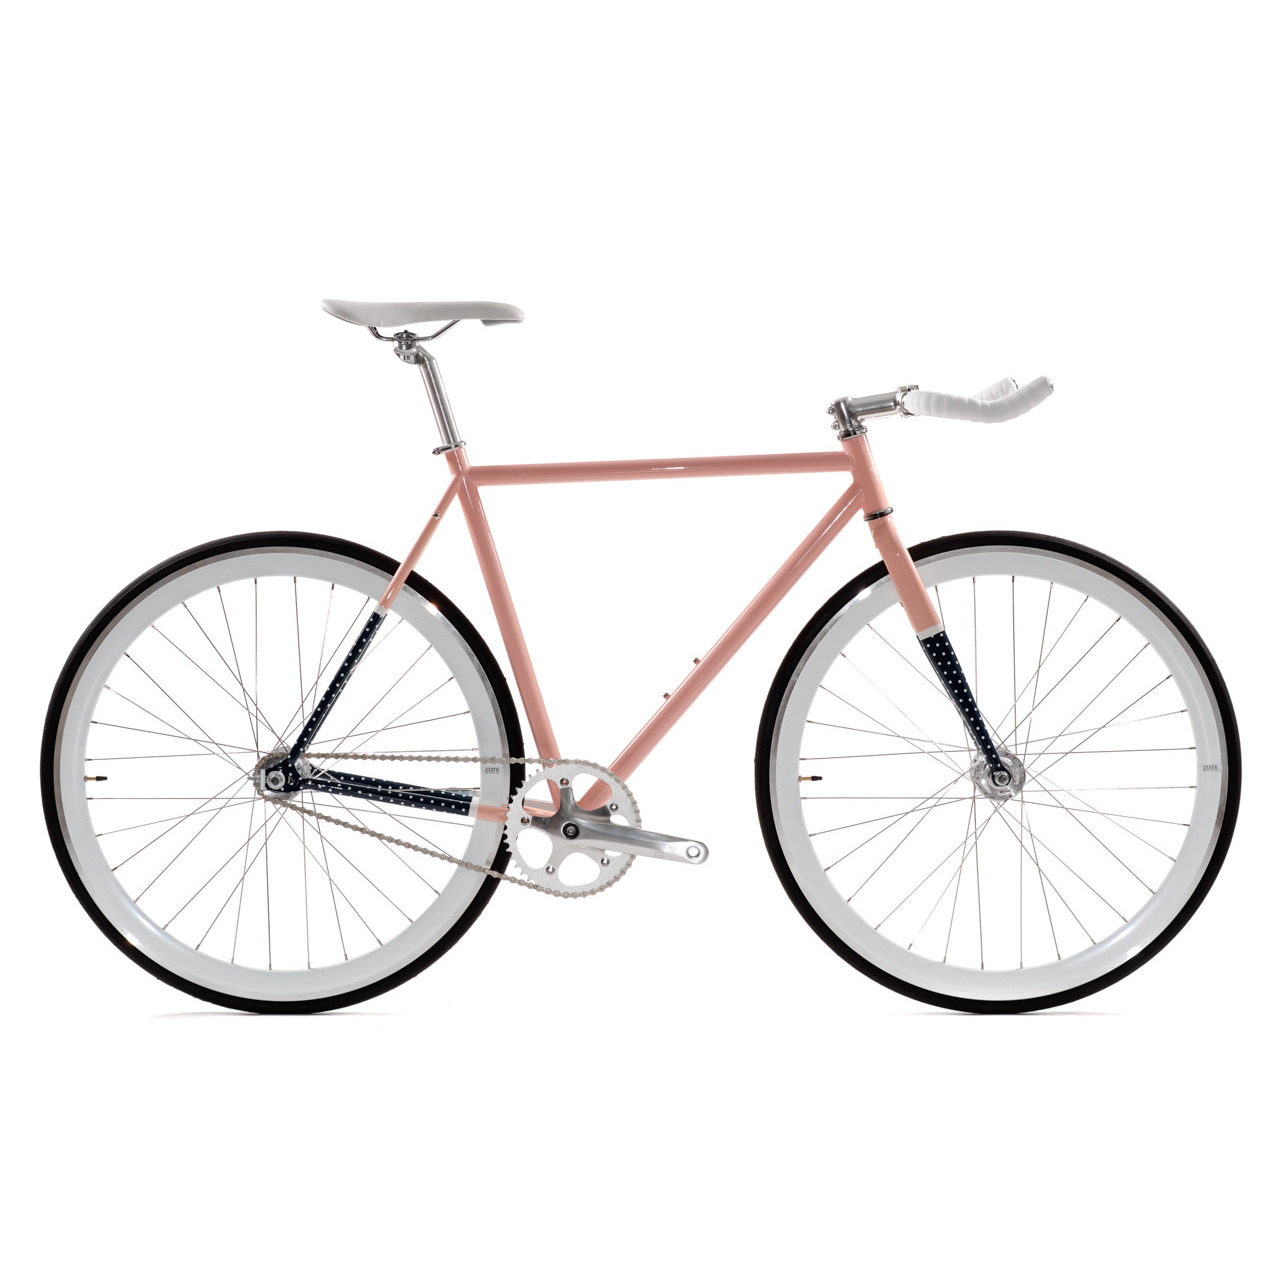 state bicycle fixed gear single speed bike lightweight. Black Bedroom Furniture Sets. Home Design Ideas